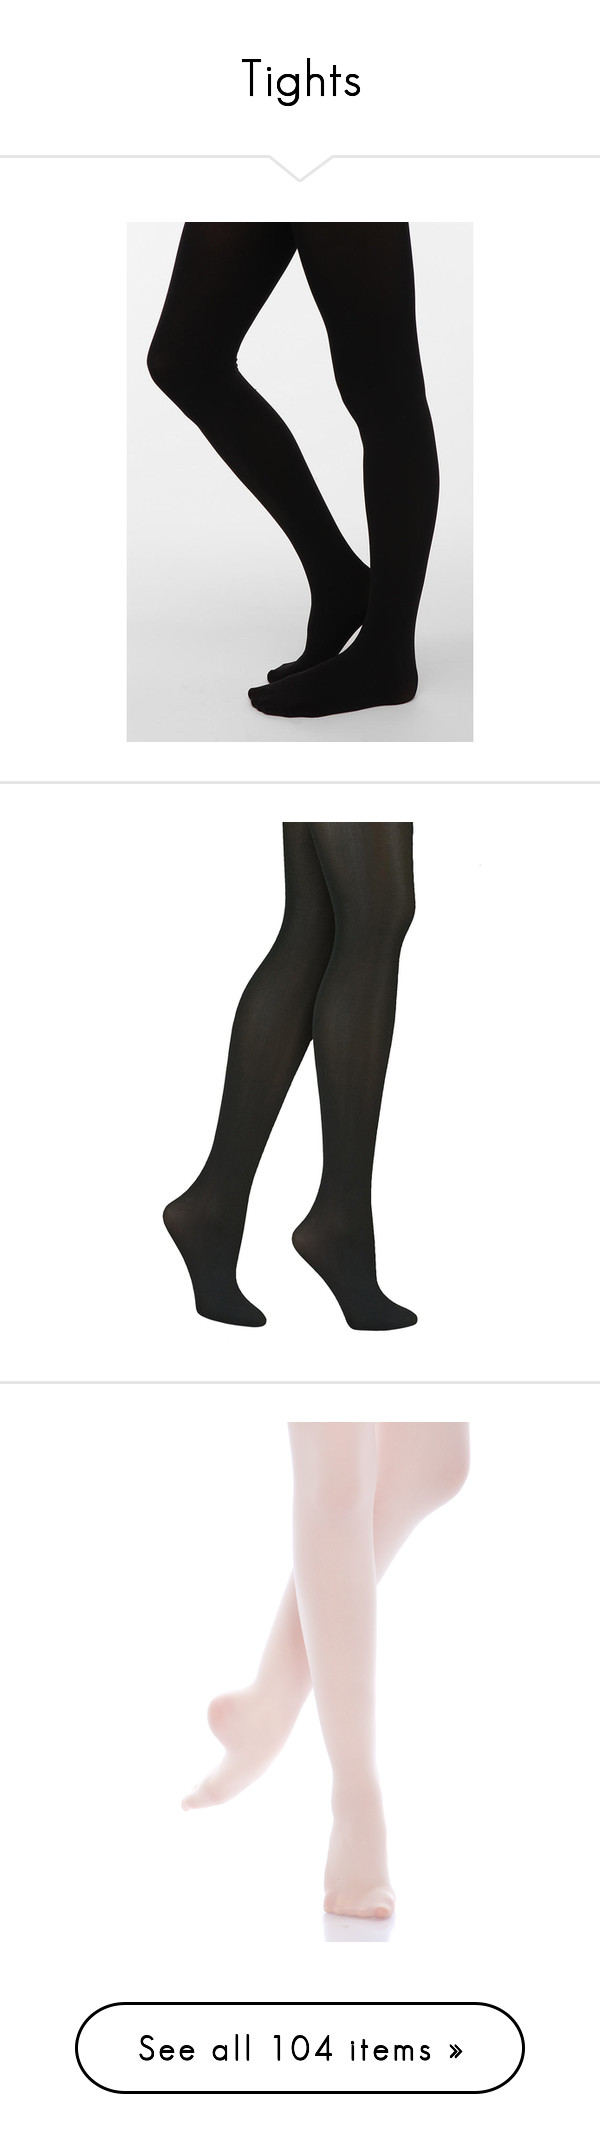 """Tights"" by alejaborrayo ❤ liked on Polyvore featuring intimates, hosiery, tights, black, black tights, opaque tights, black opaque tights, black pantyhose, opaque pantyhose and black hosiery"